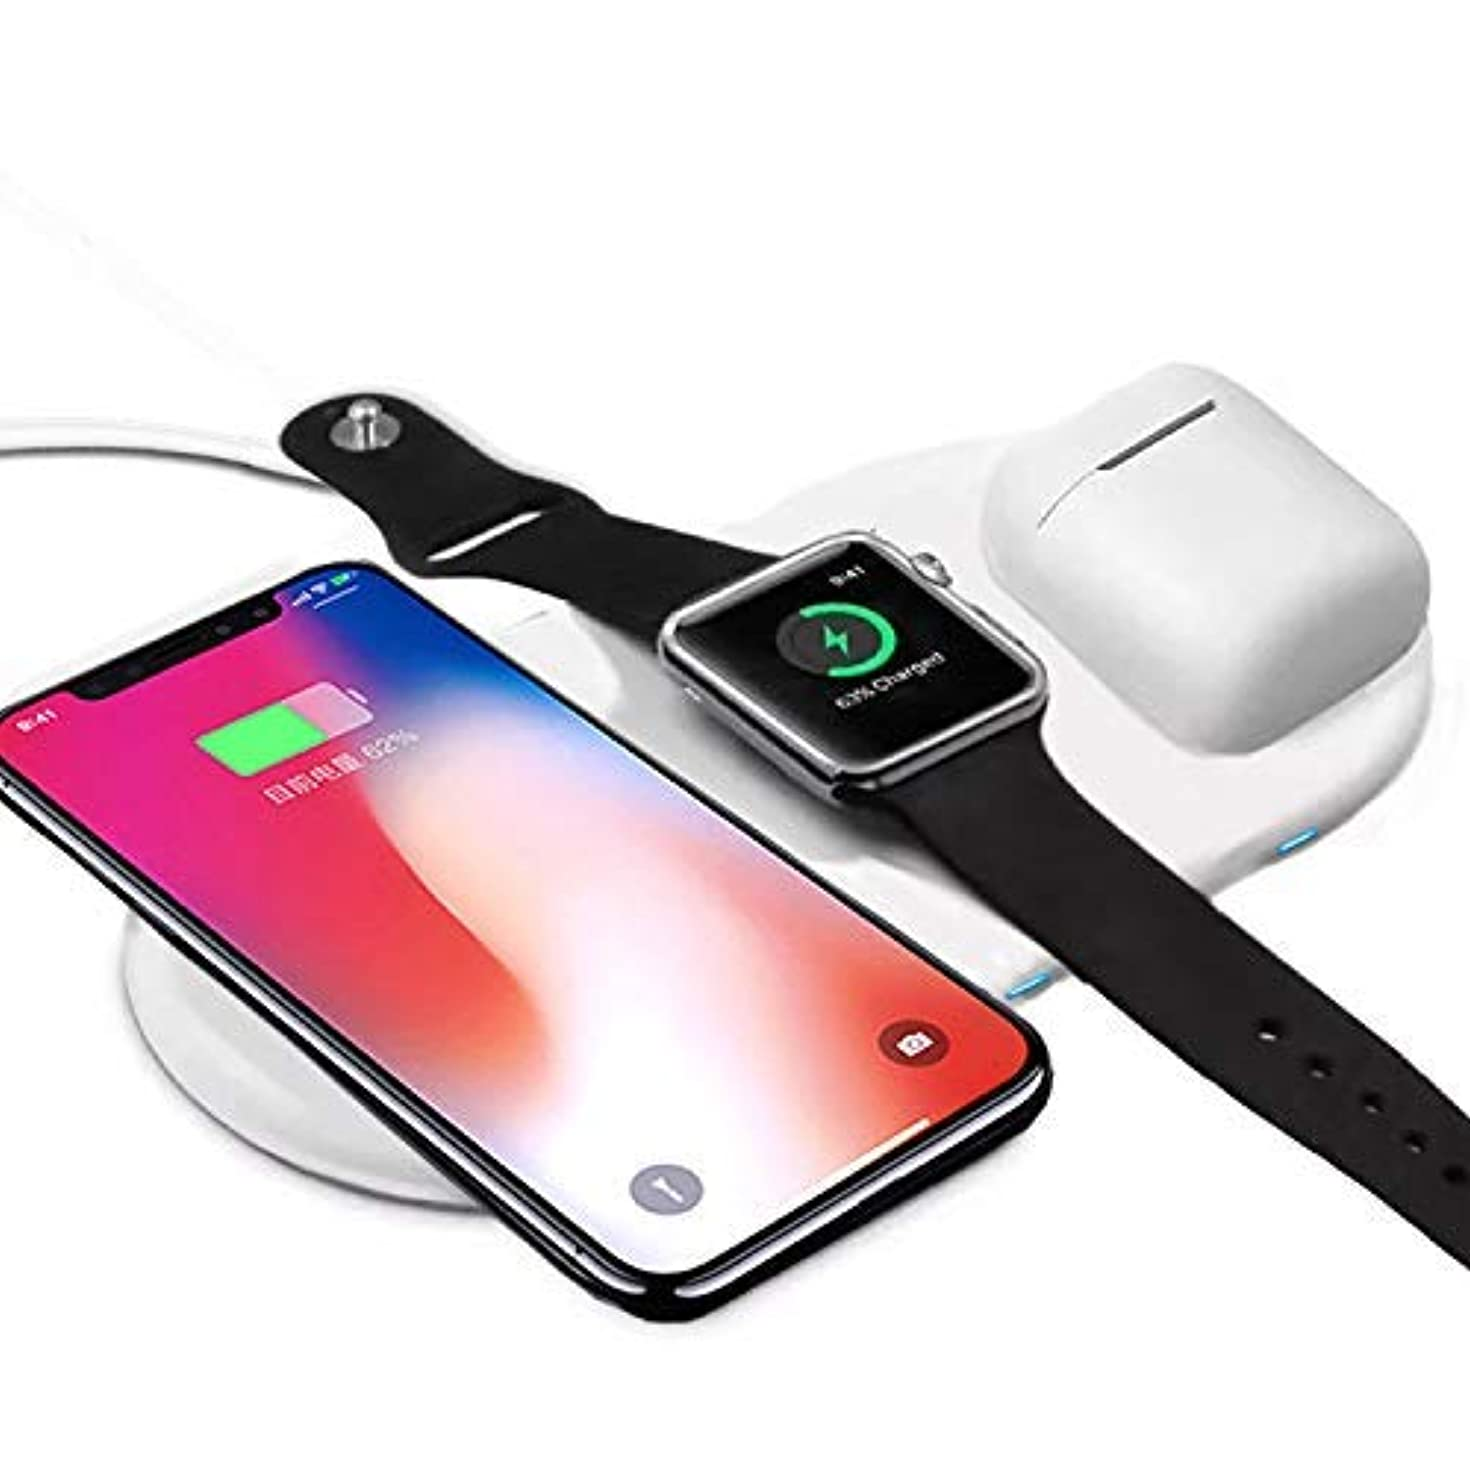 Wireless Charger Pad,3 in 1 Qi Wireless Charger Holder for IWatch iPhone Airpods,Wireless Charger for IphoneX 8/8Plus/ Samsung S9/S8/Plus (3 in 1 Wireless Charger Pad Only)